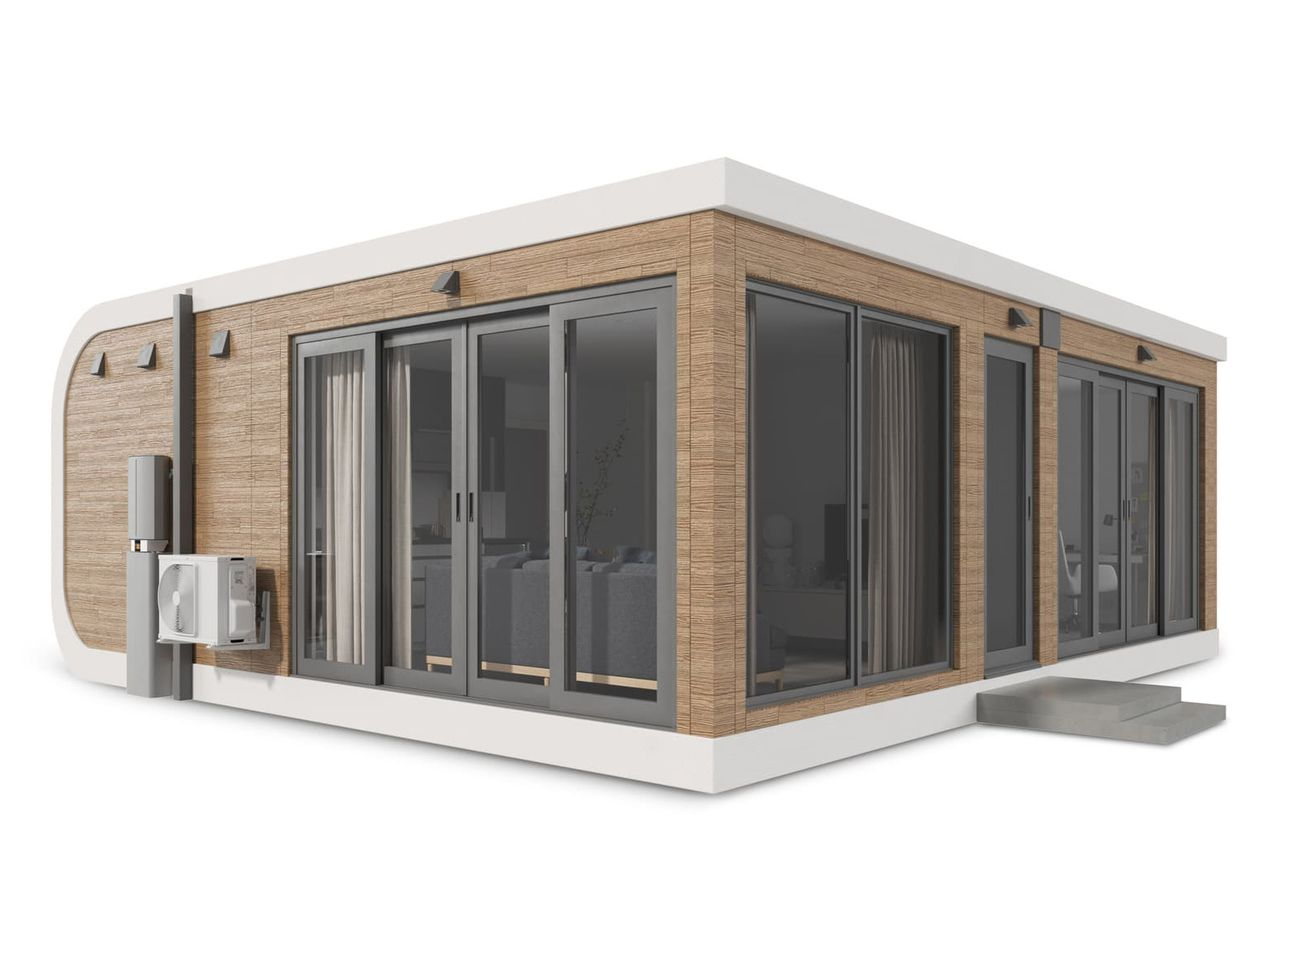 New proprietary material helps make 3D print a house!